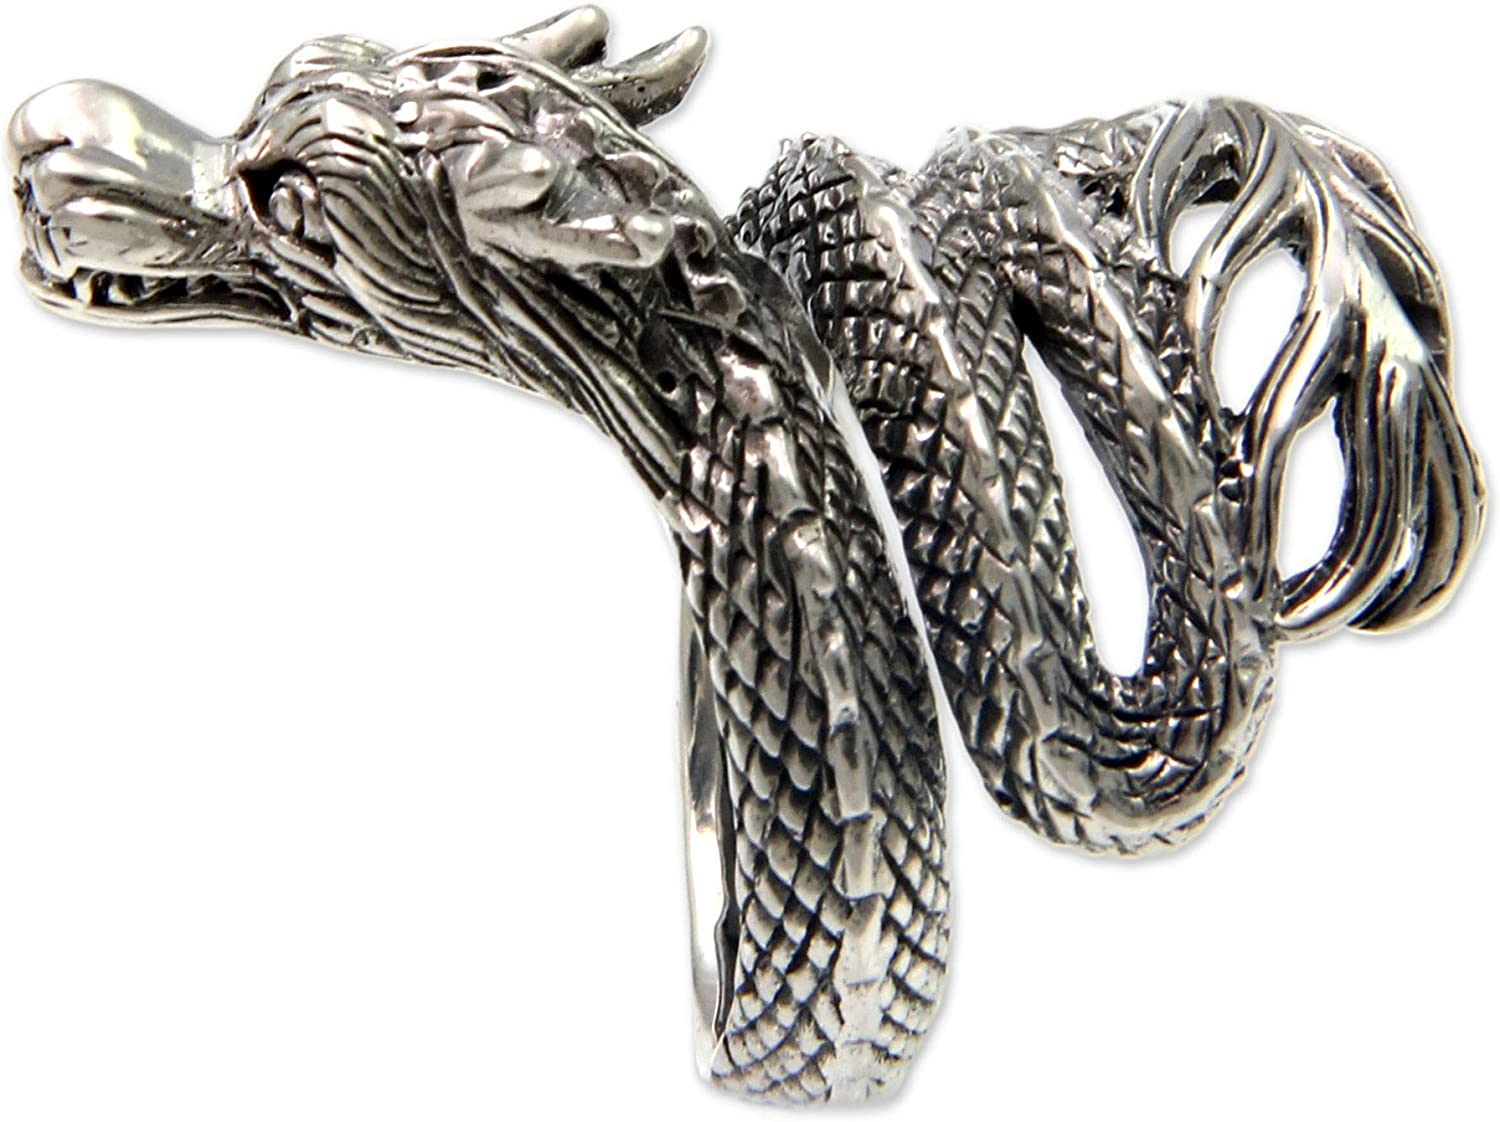 Solid Sterling Silver .925 Bali Wrap Snake Ring size 8.